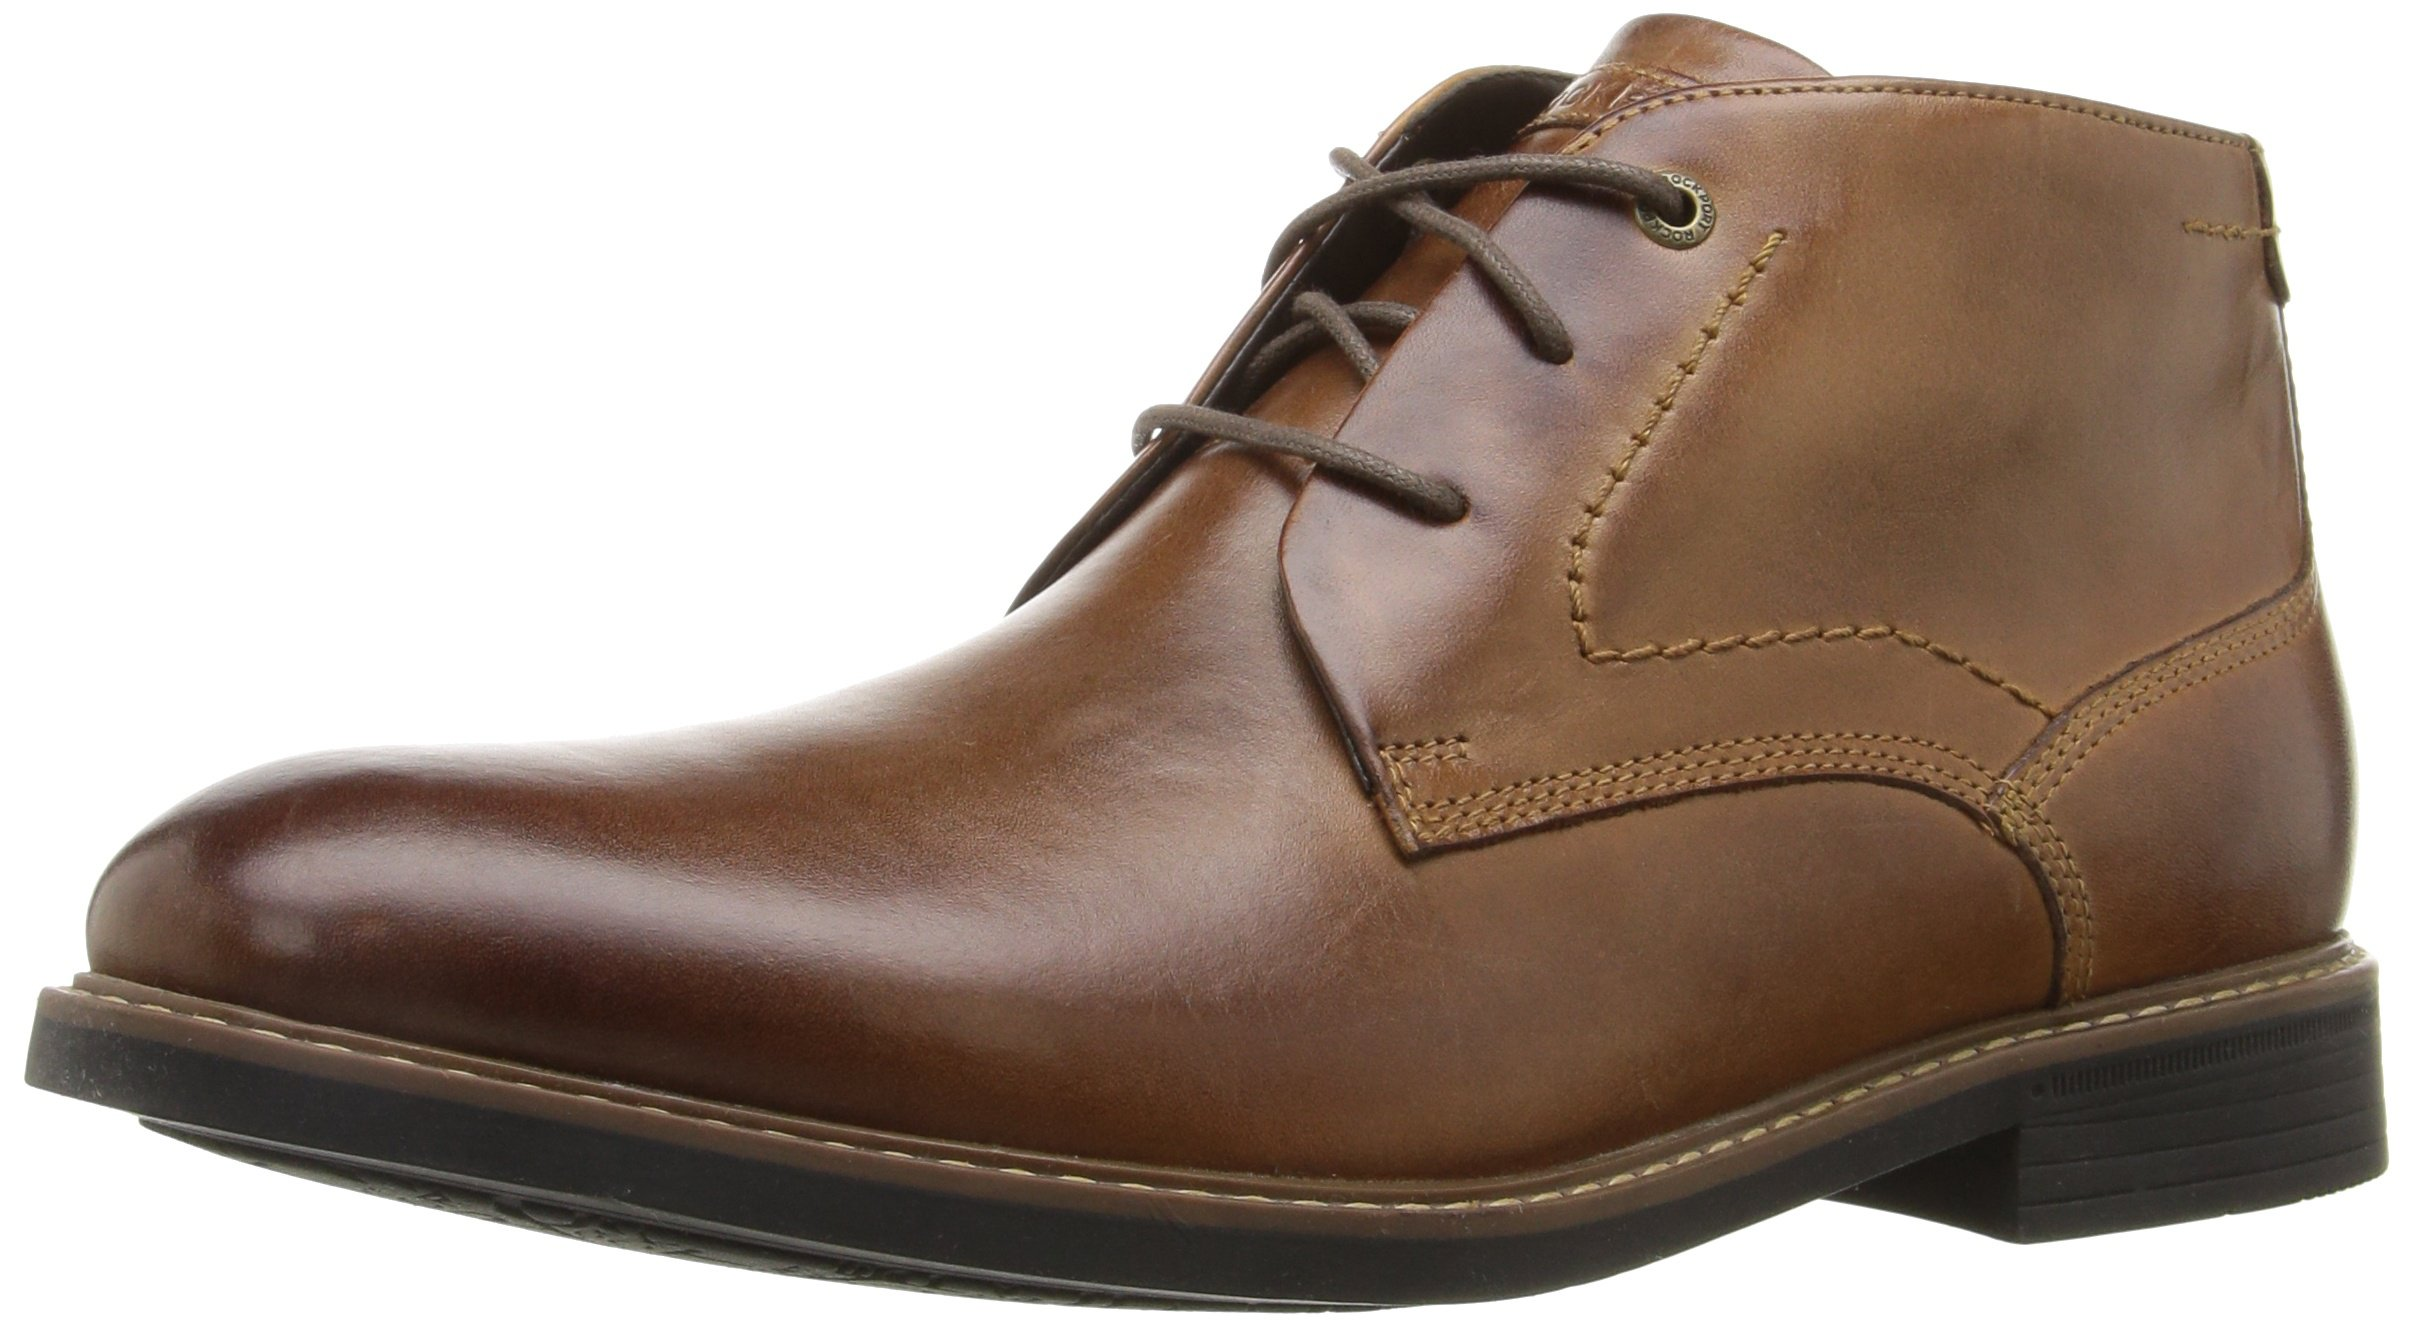 Rockport Men's Classic Break Chukka Boot- Dark Brown Leather-10 W by Rockport